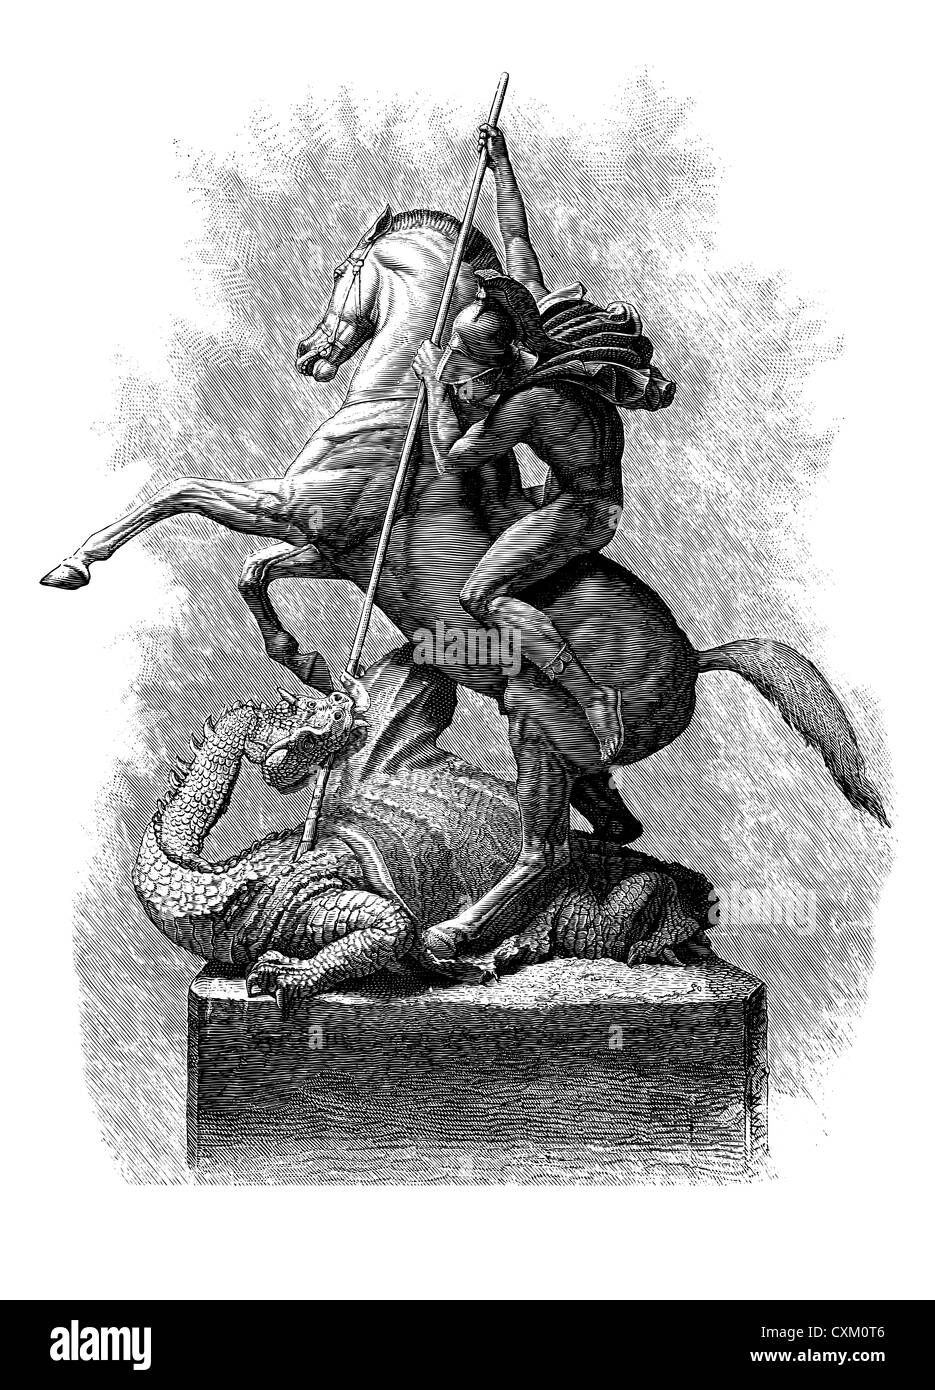 St. George and the Dragon, England. - Stock Image